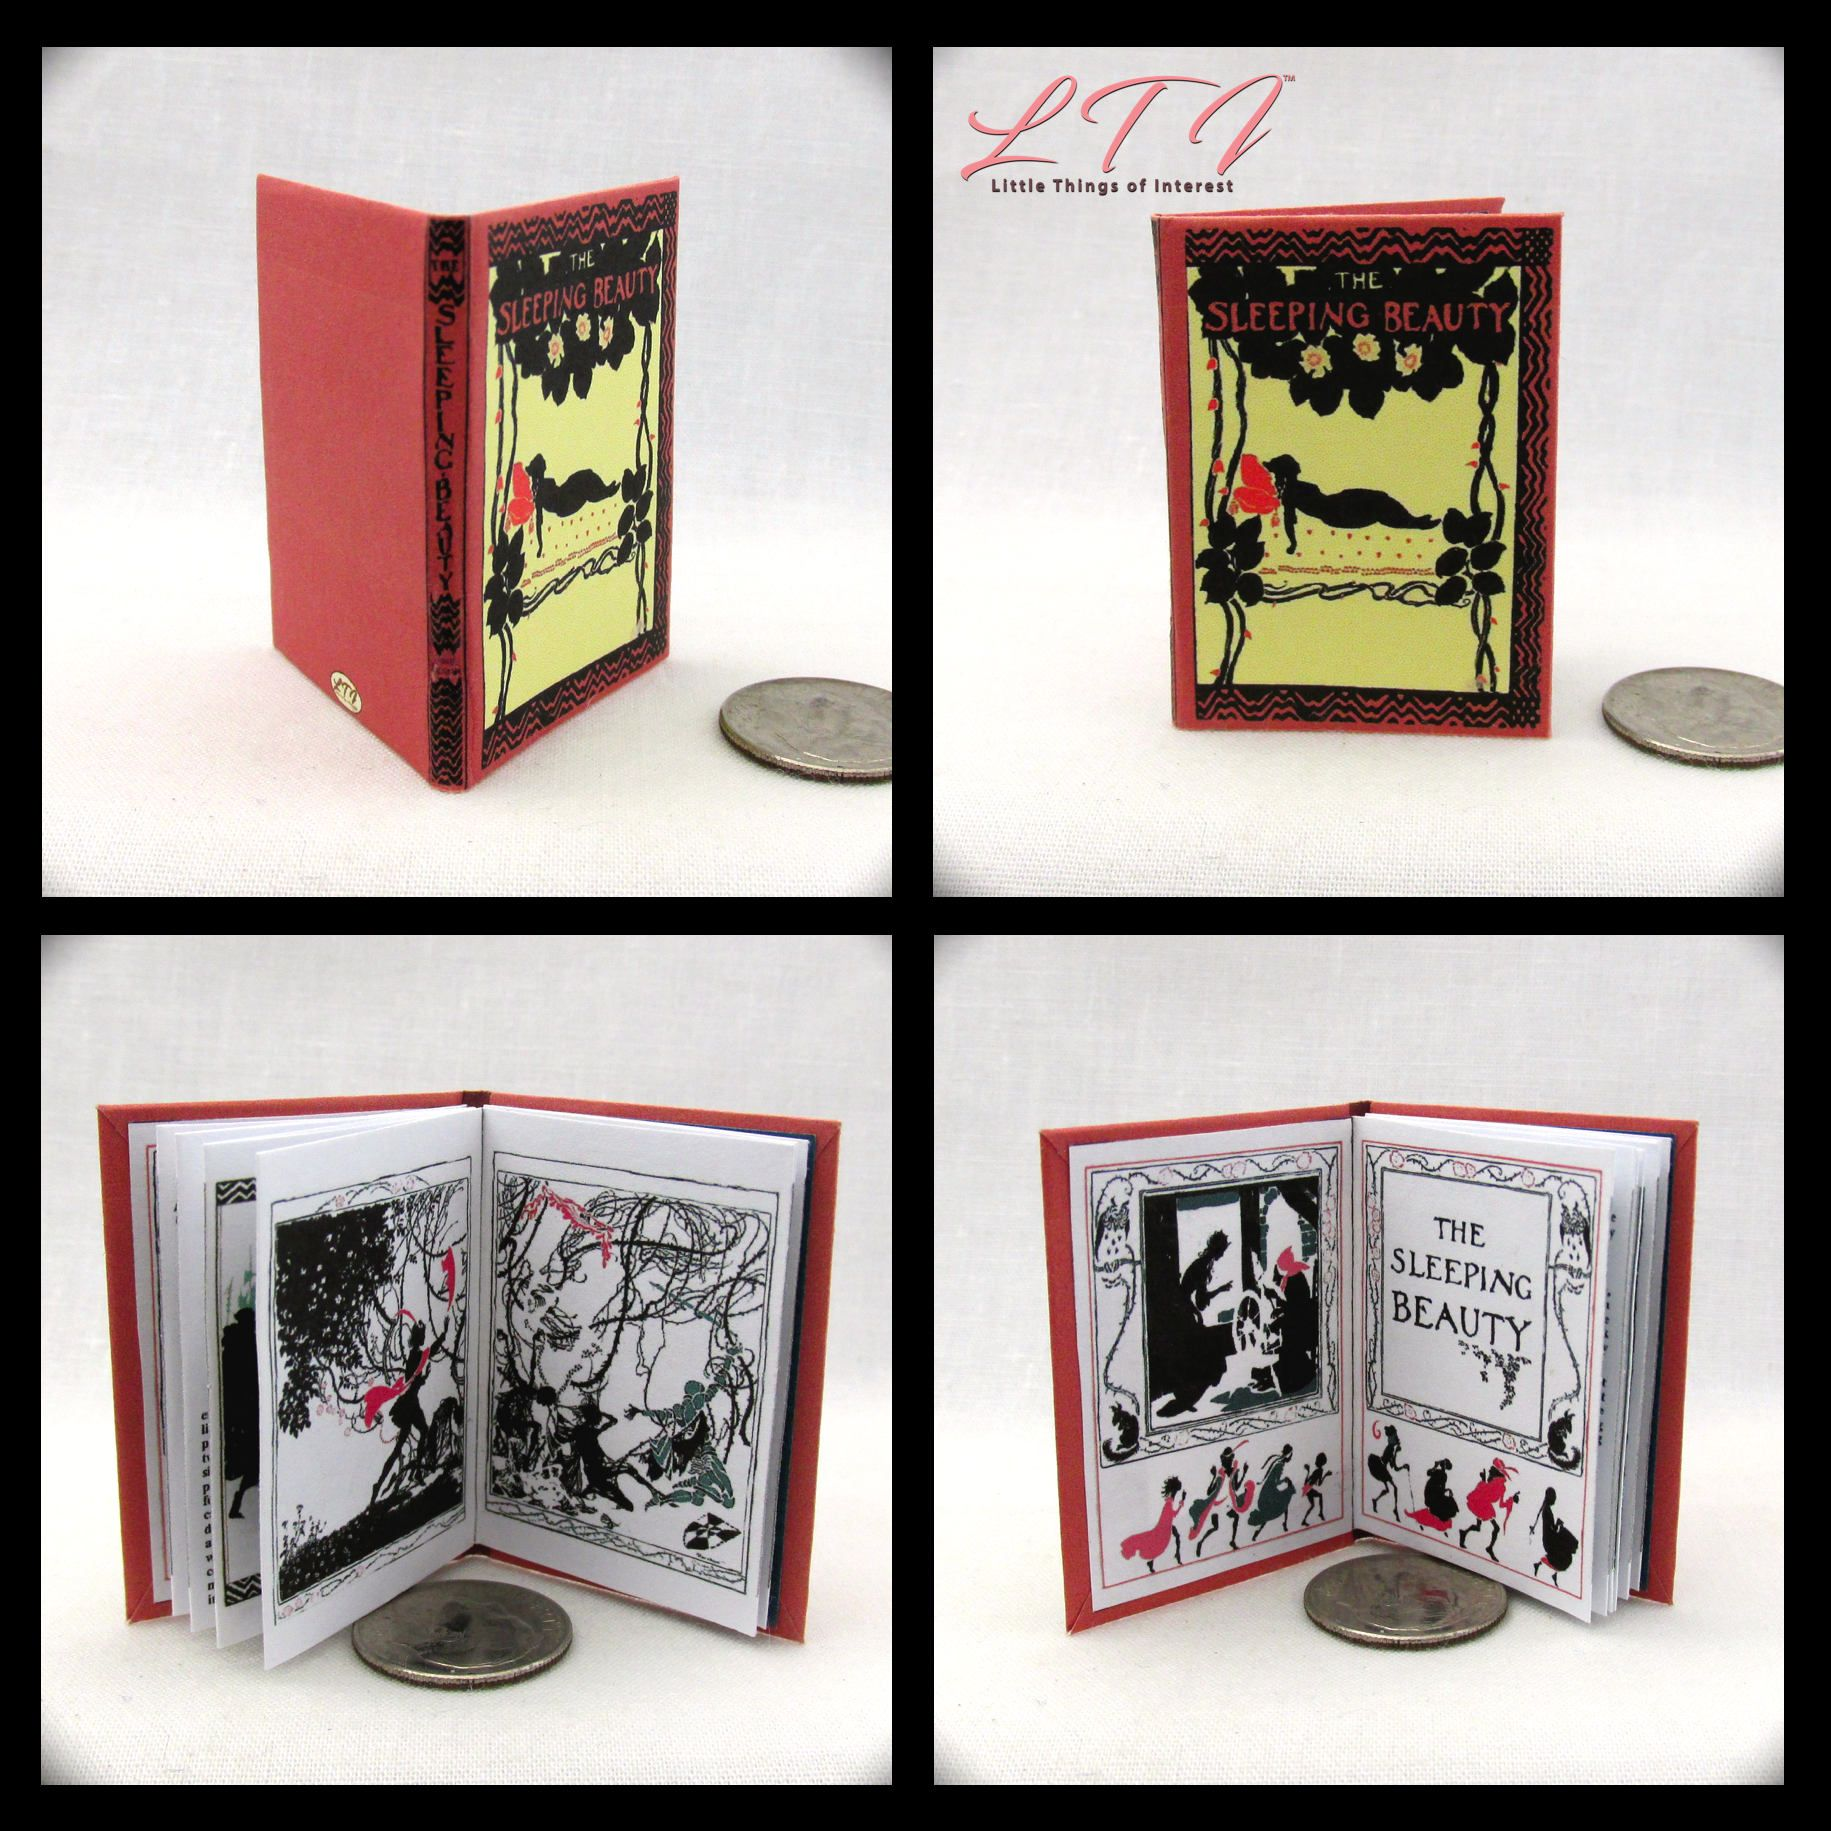 FUN AT THE CIRCUS Dollhouse Miniature Book 1:12 Scale Illustrated Vintage Book